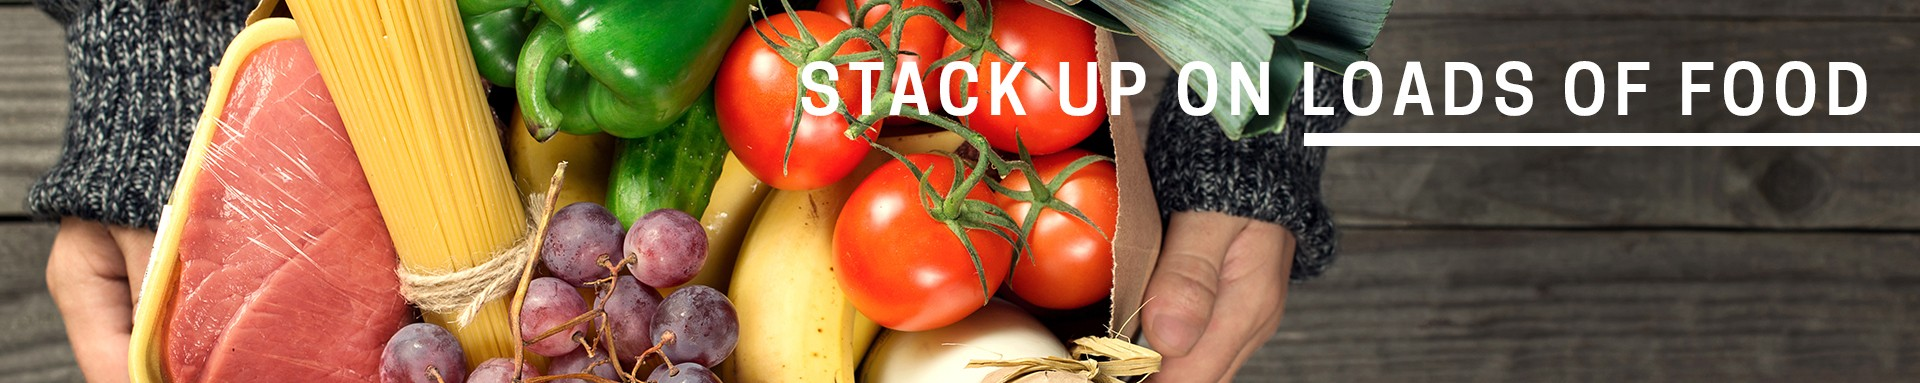 stack up on loads of food